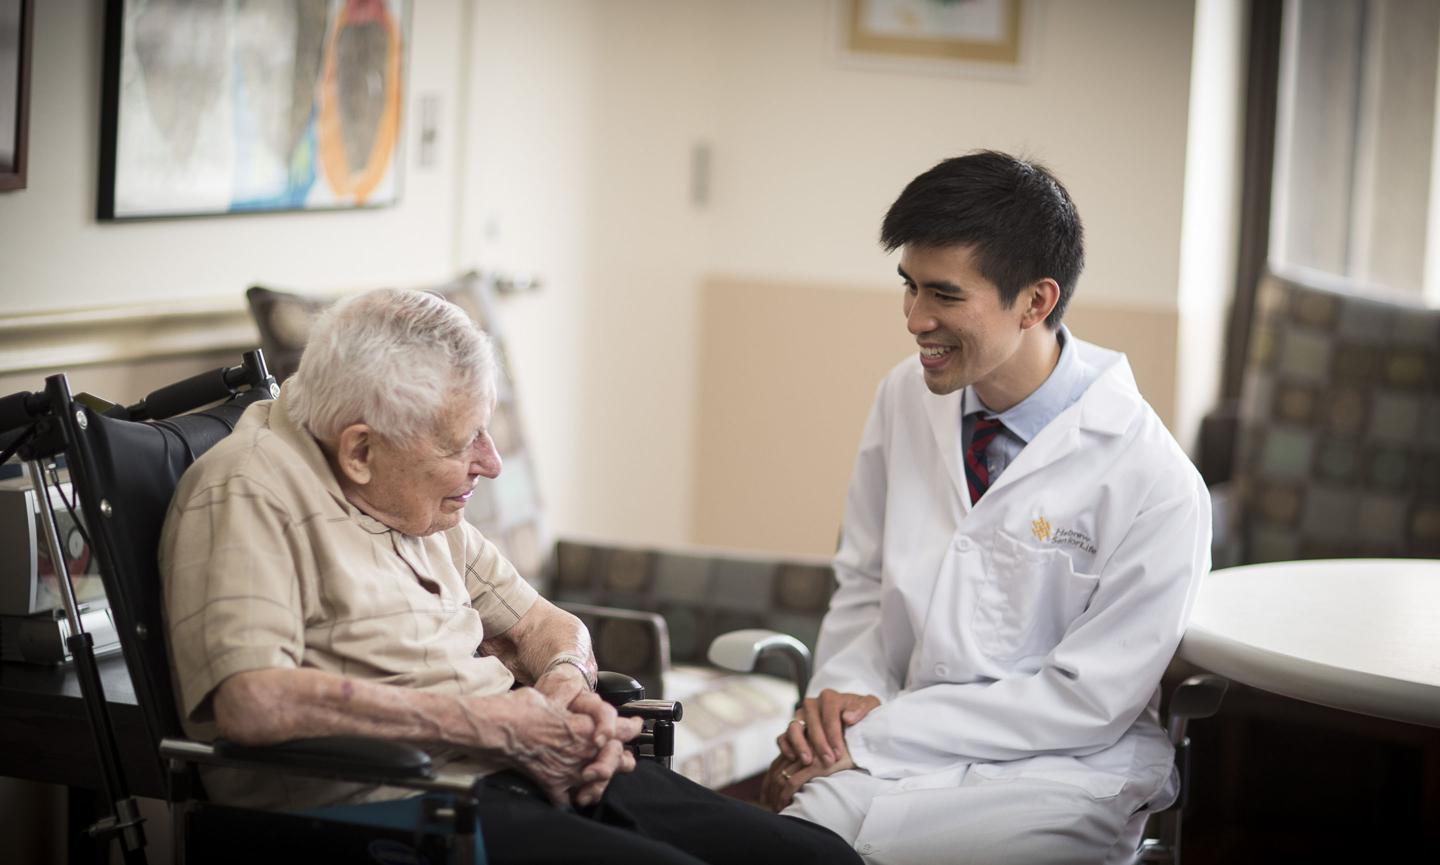 An older man in a wheelchair sits talking with a young Harvard Medical School doctor at Hebrew SeniorLife. The doctor is smiling and wearing a white coat.